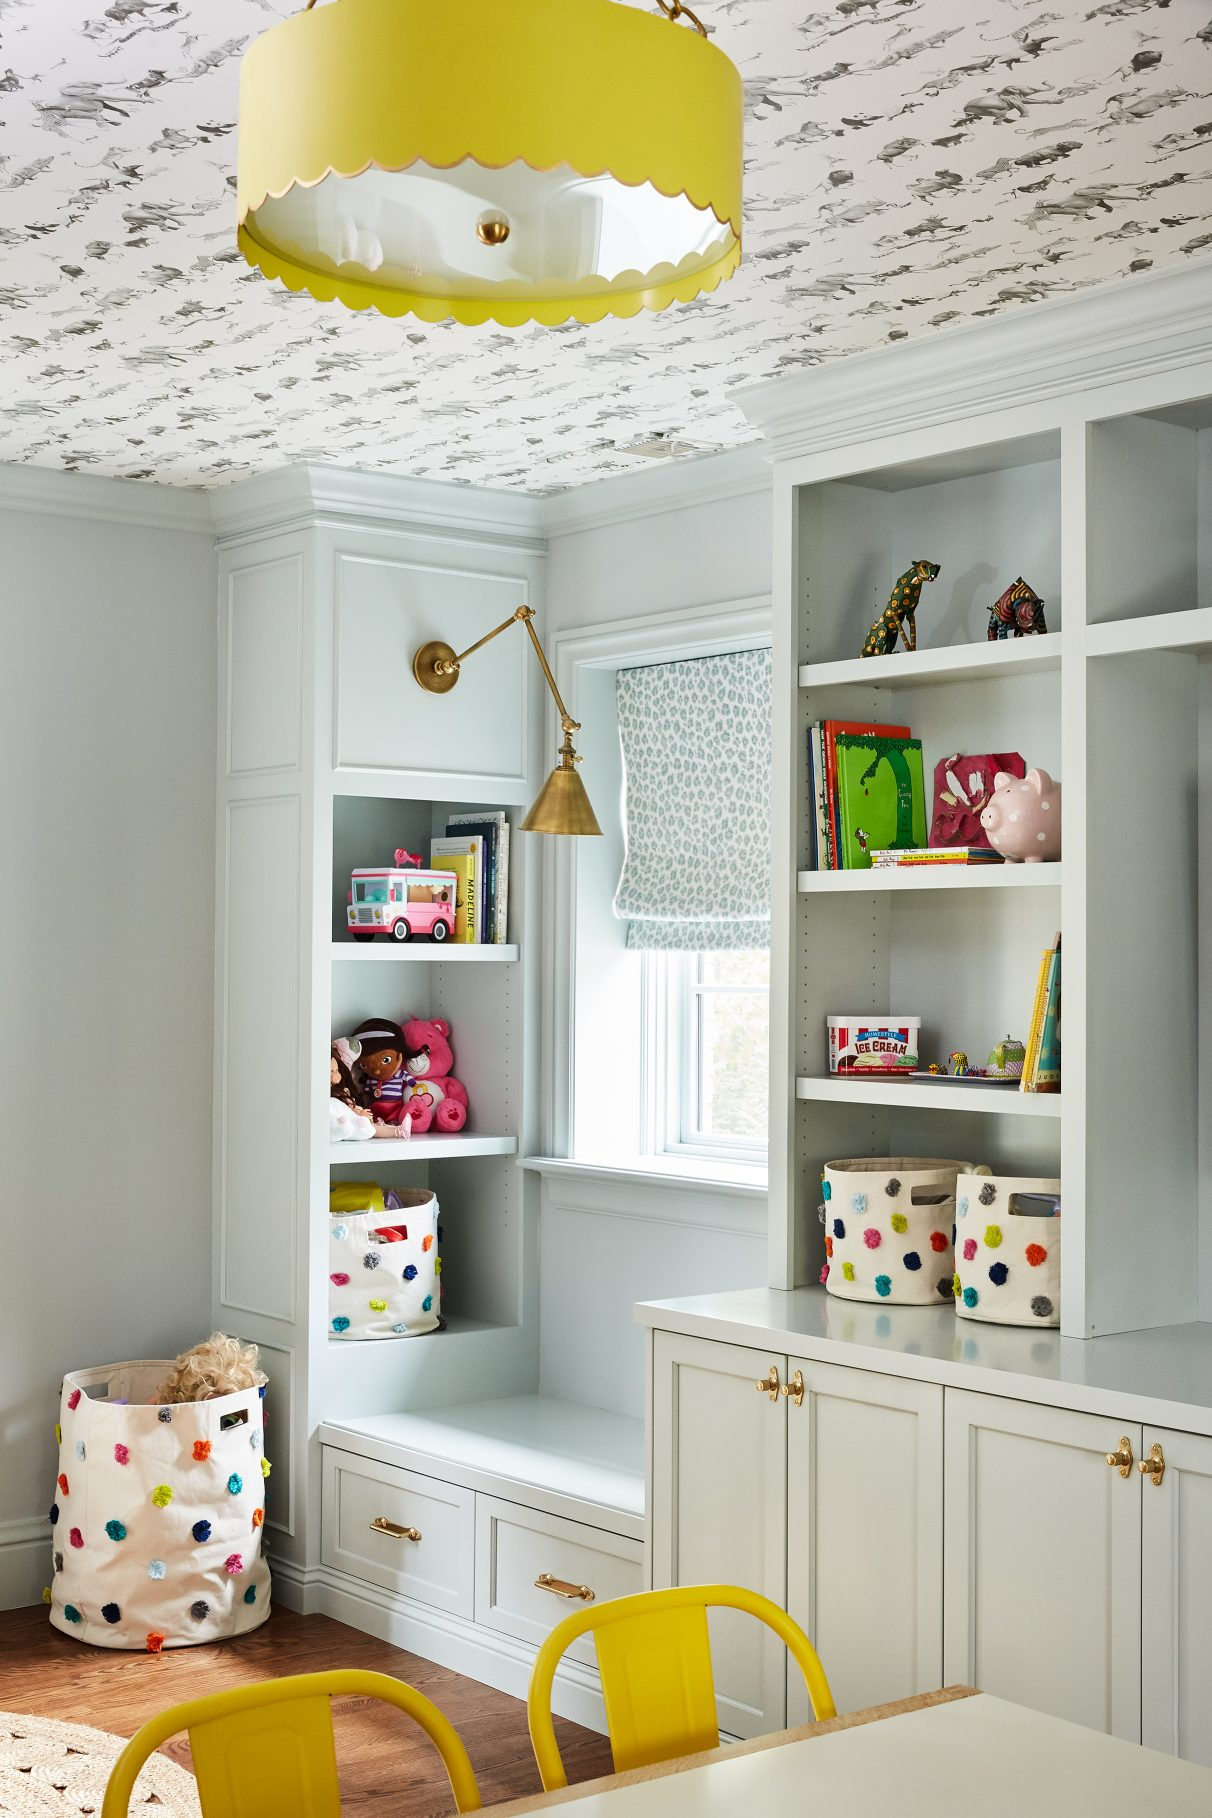 Fordyce project: Kid's room